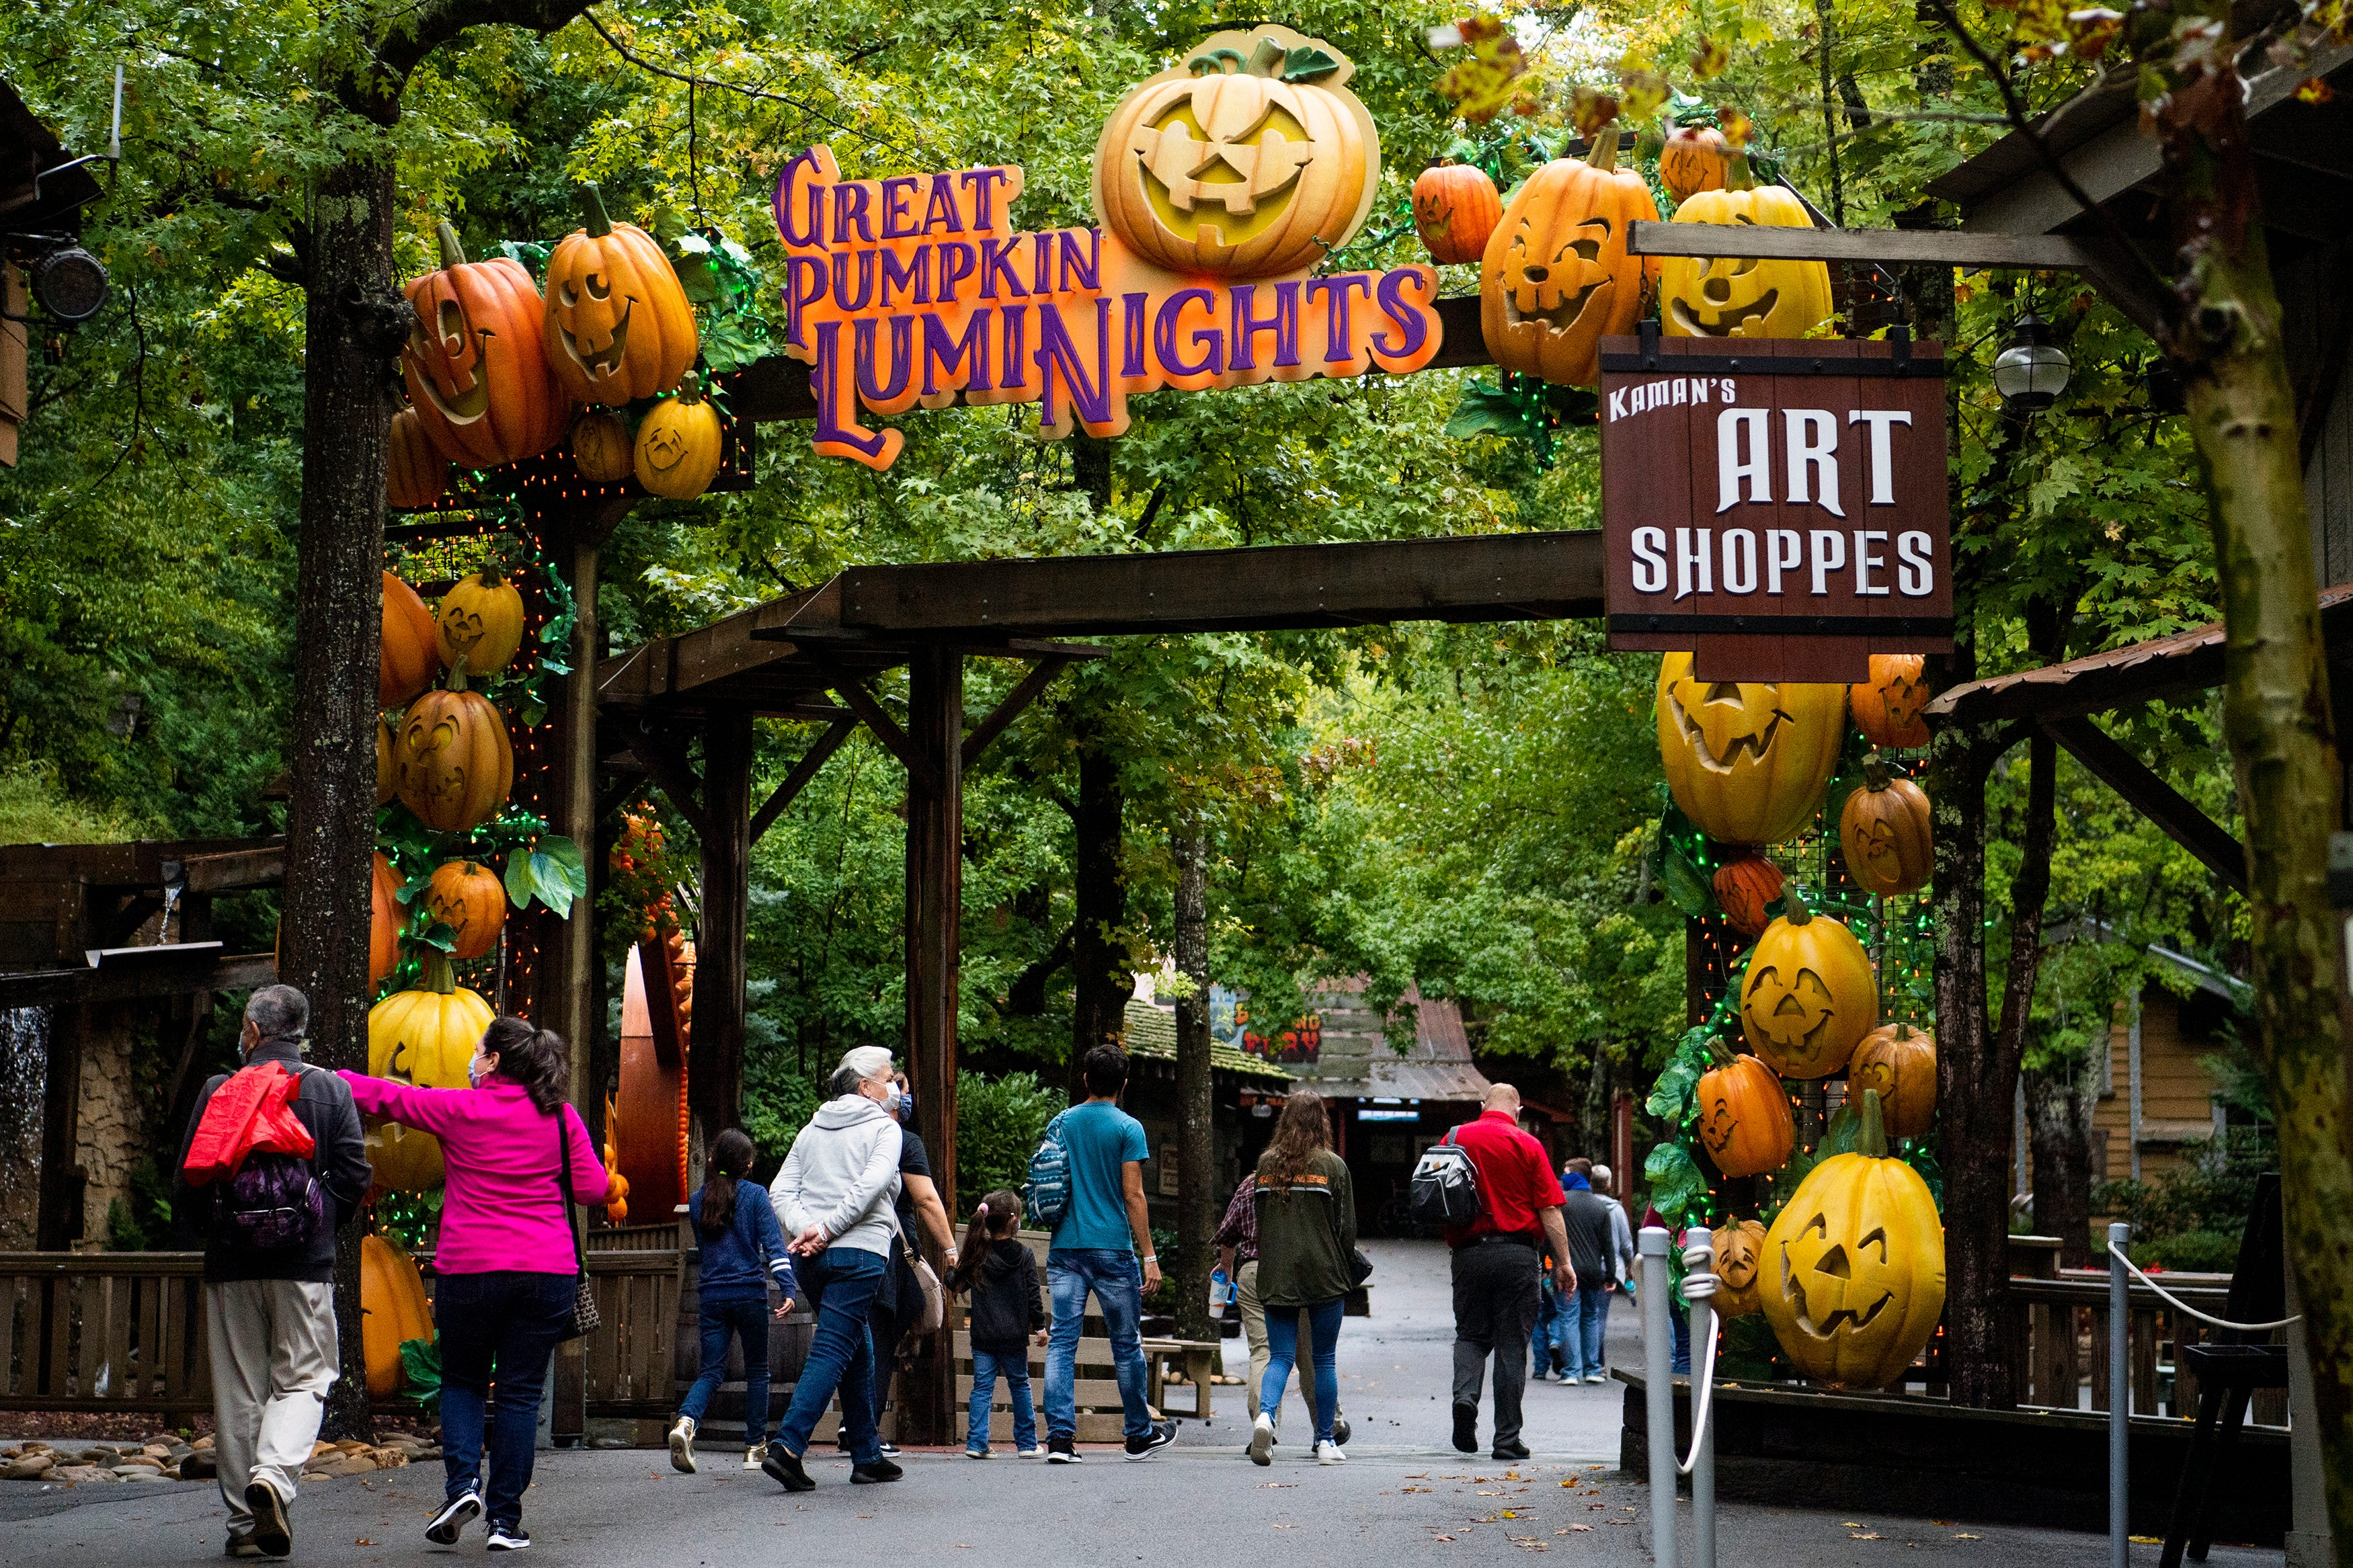 'Spooky, but not scary': Dolly Parton's Dollywood theme park embraces fall